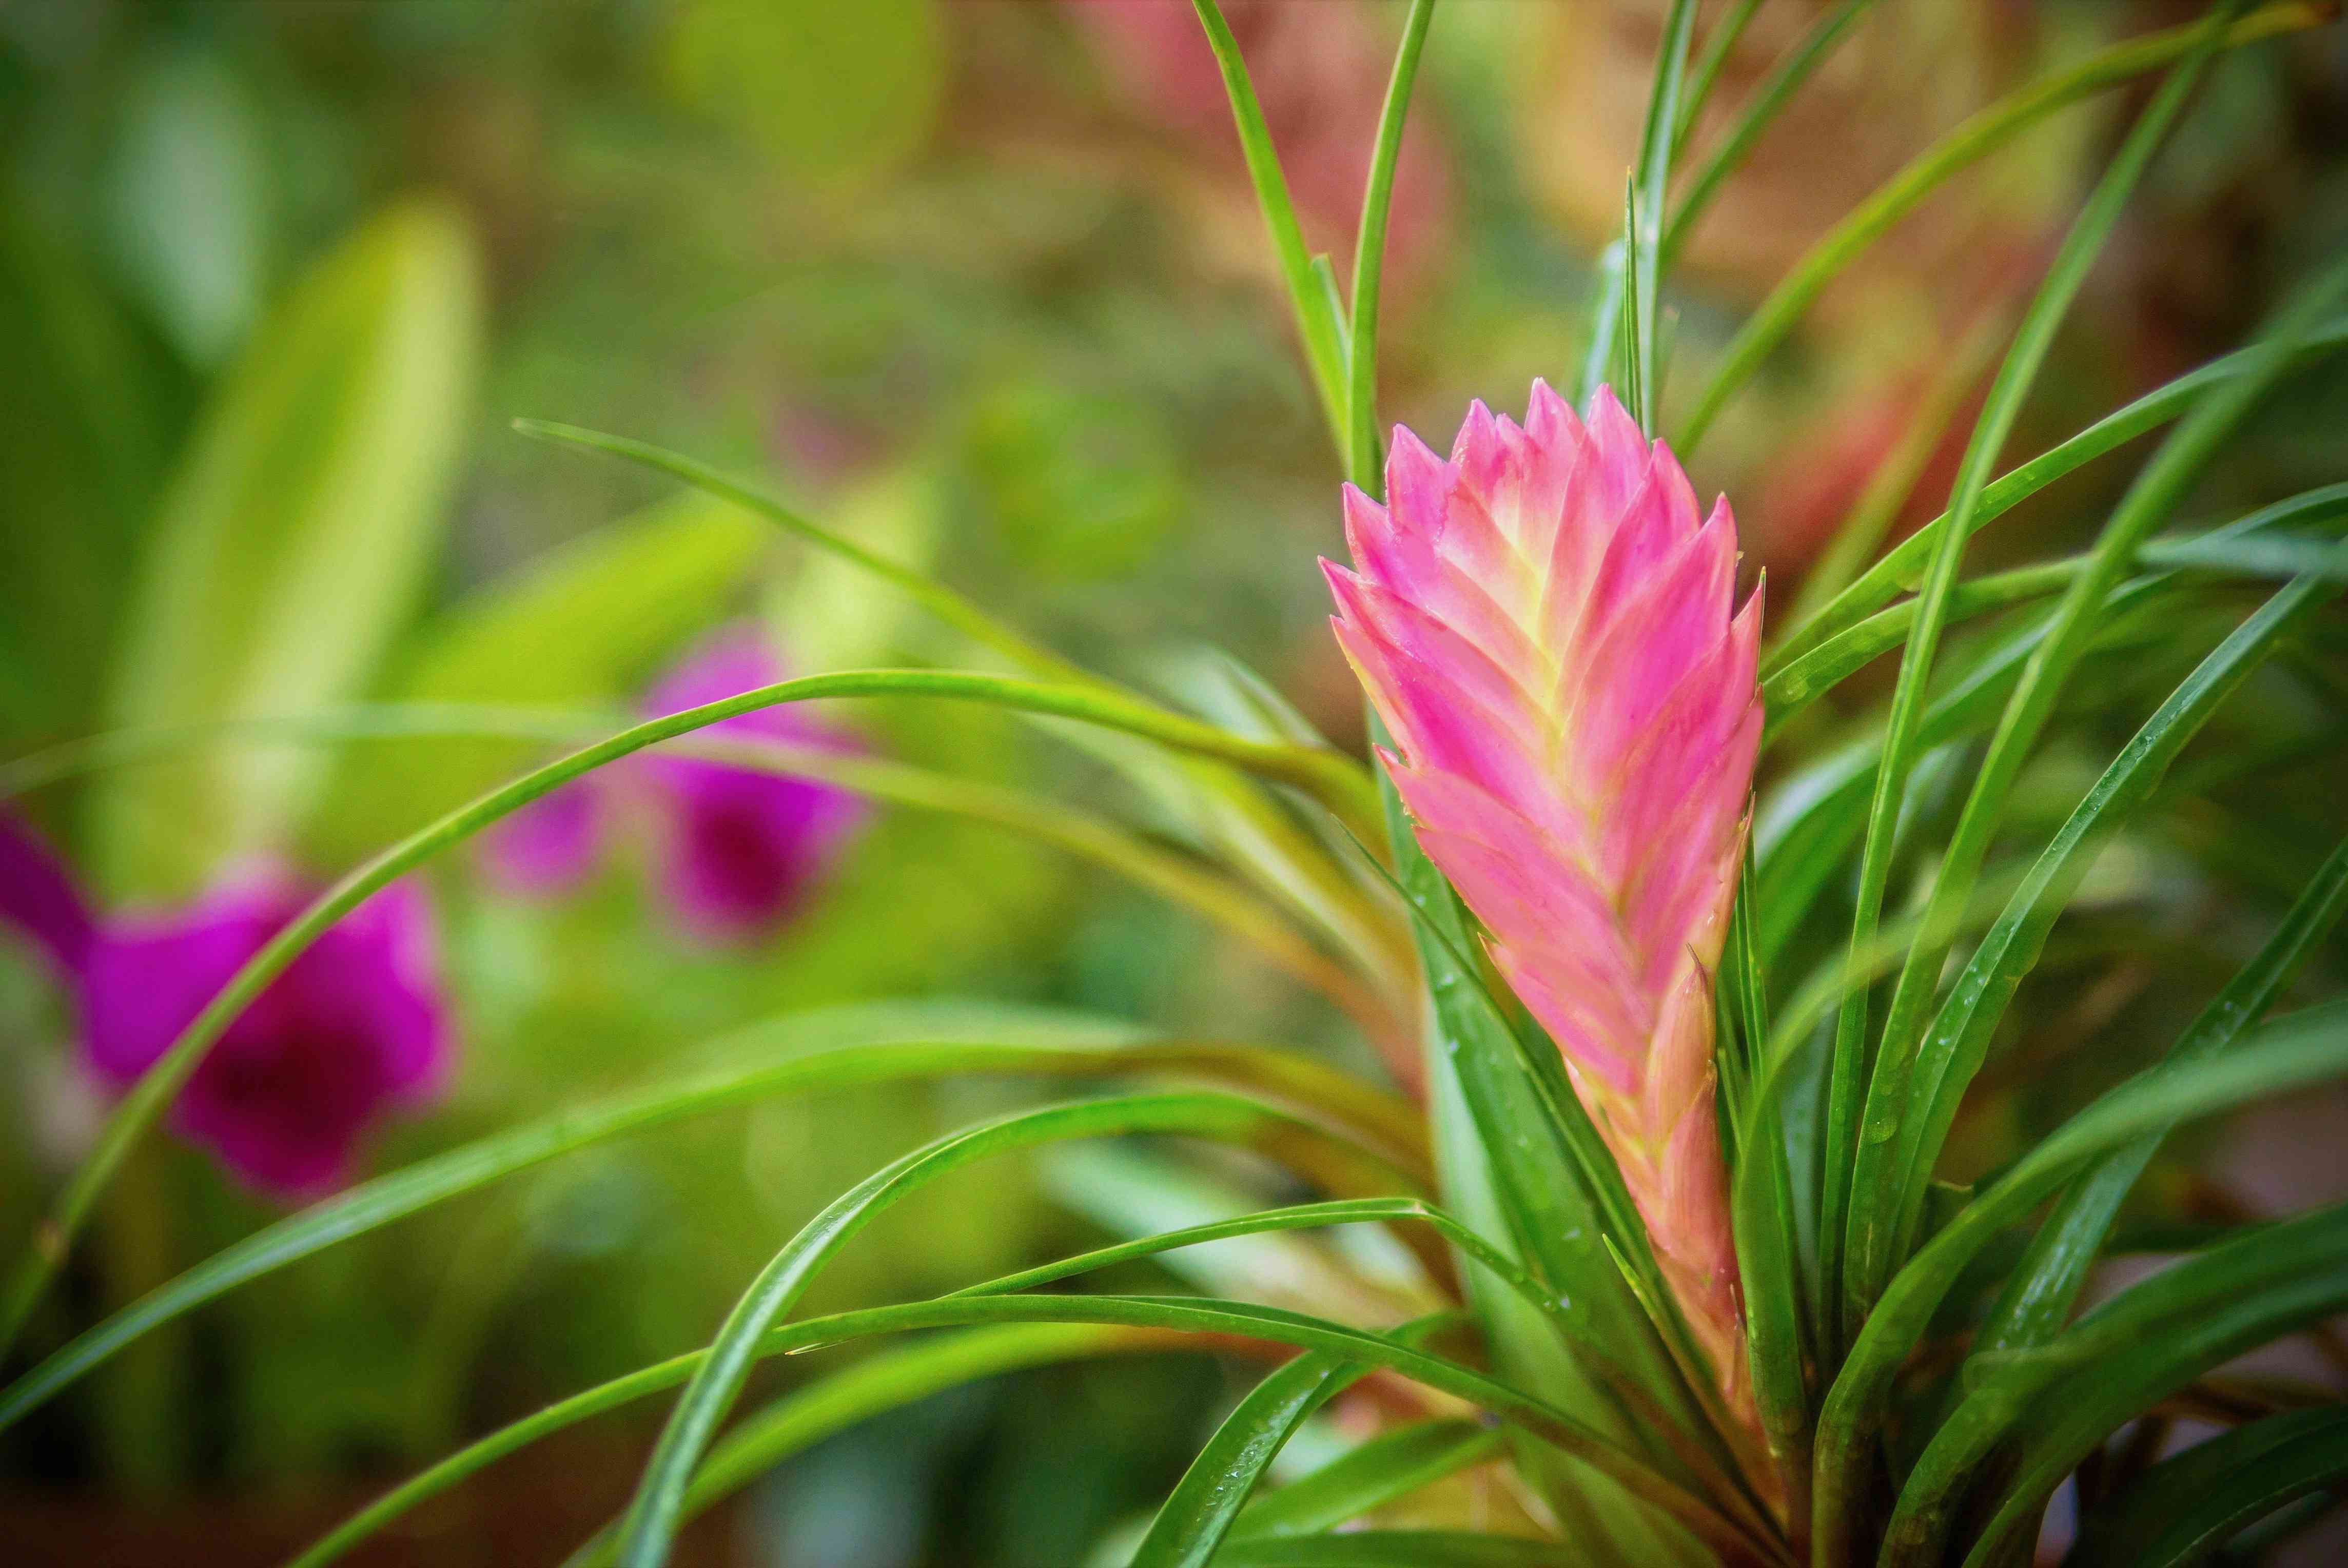 Pink quill plant with a pink bloom